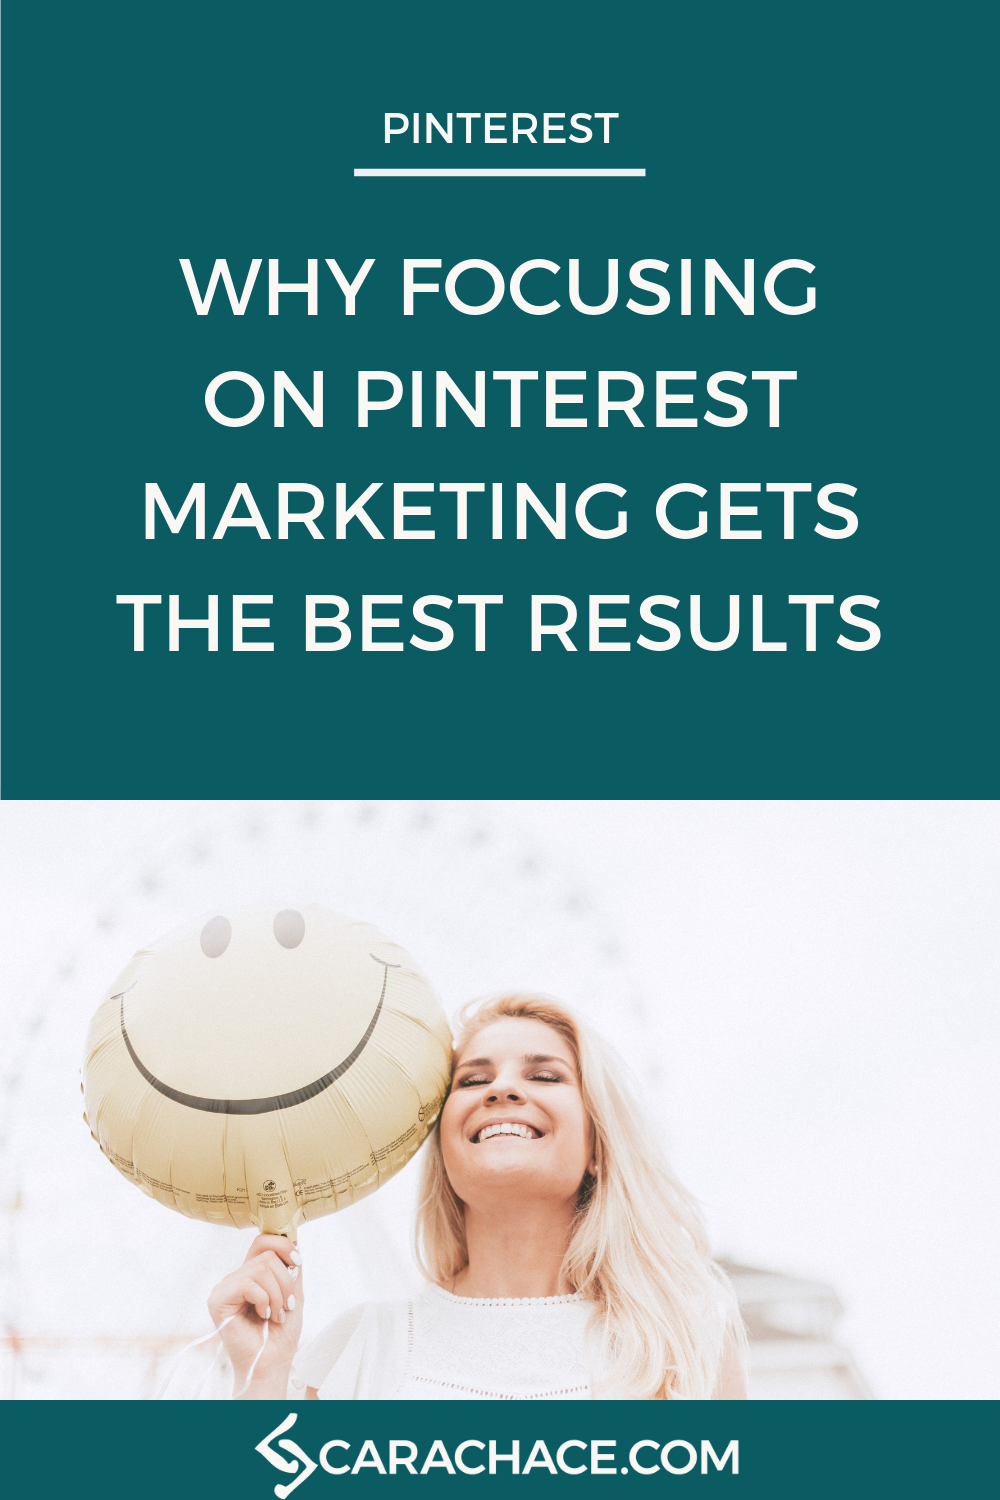 Why Focusing On Pinterest Marketing Gets The Best Results Pin 1 thumb.png